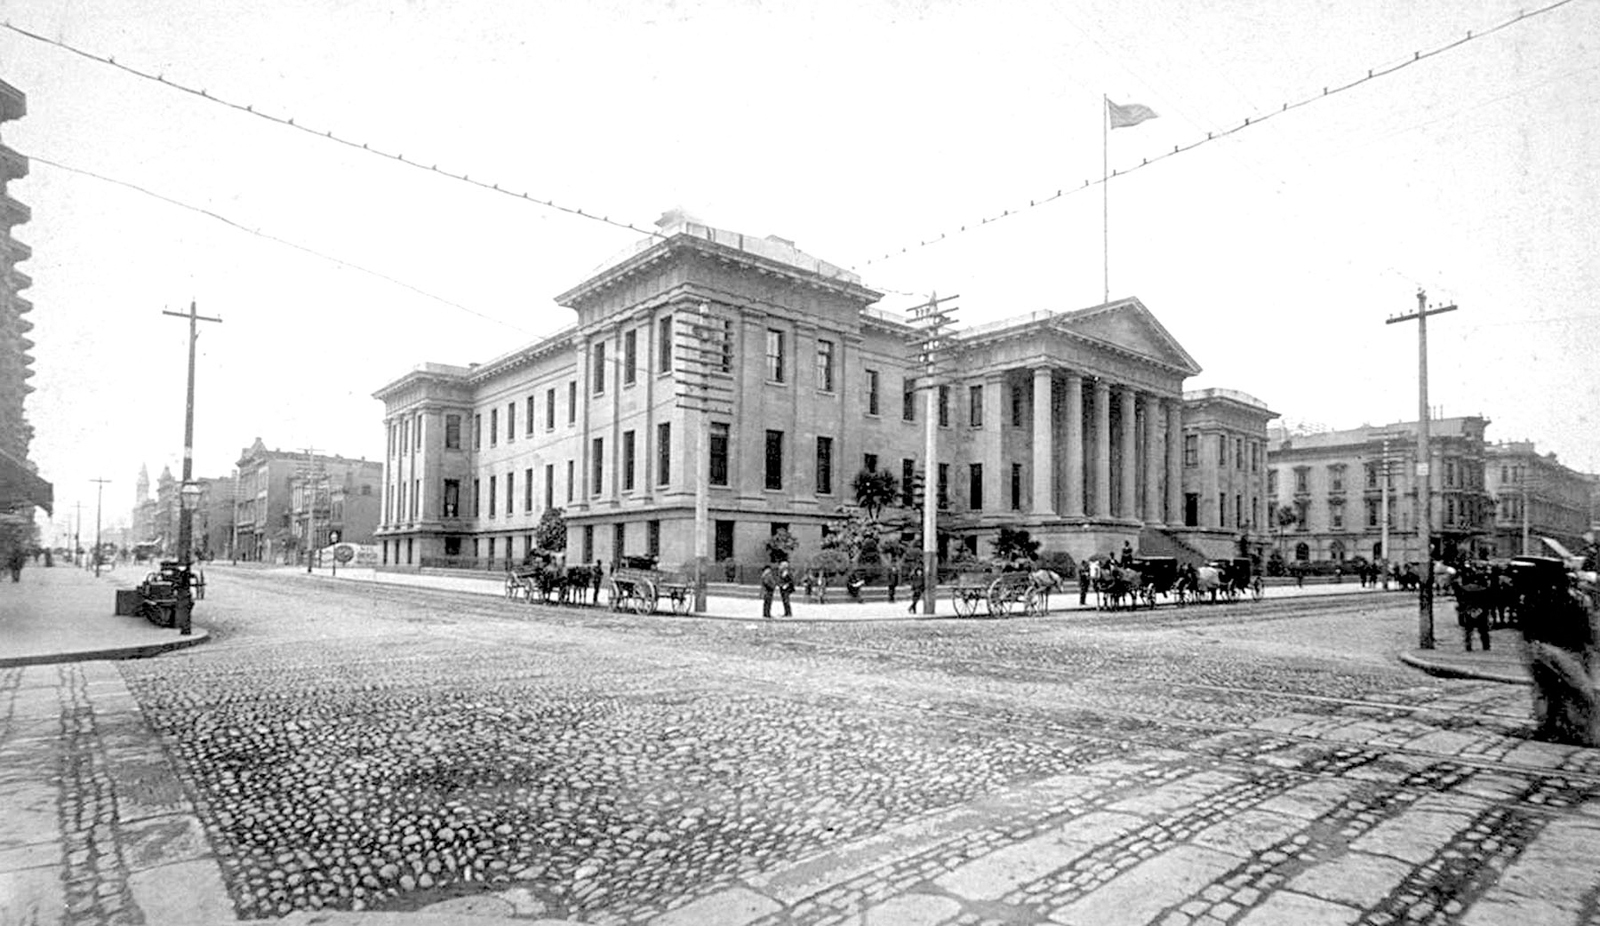 Here's a picture of the Old Mint from 1889. It still stands at the corner of Mission St. and Fifth St. in large part thanks to it's foundation, which rests of loose gravel and soil, allowing the building to roll and shift during the 1906 earthquake instea